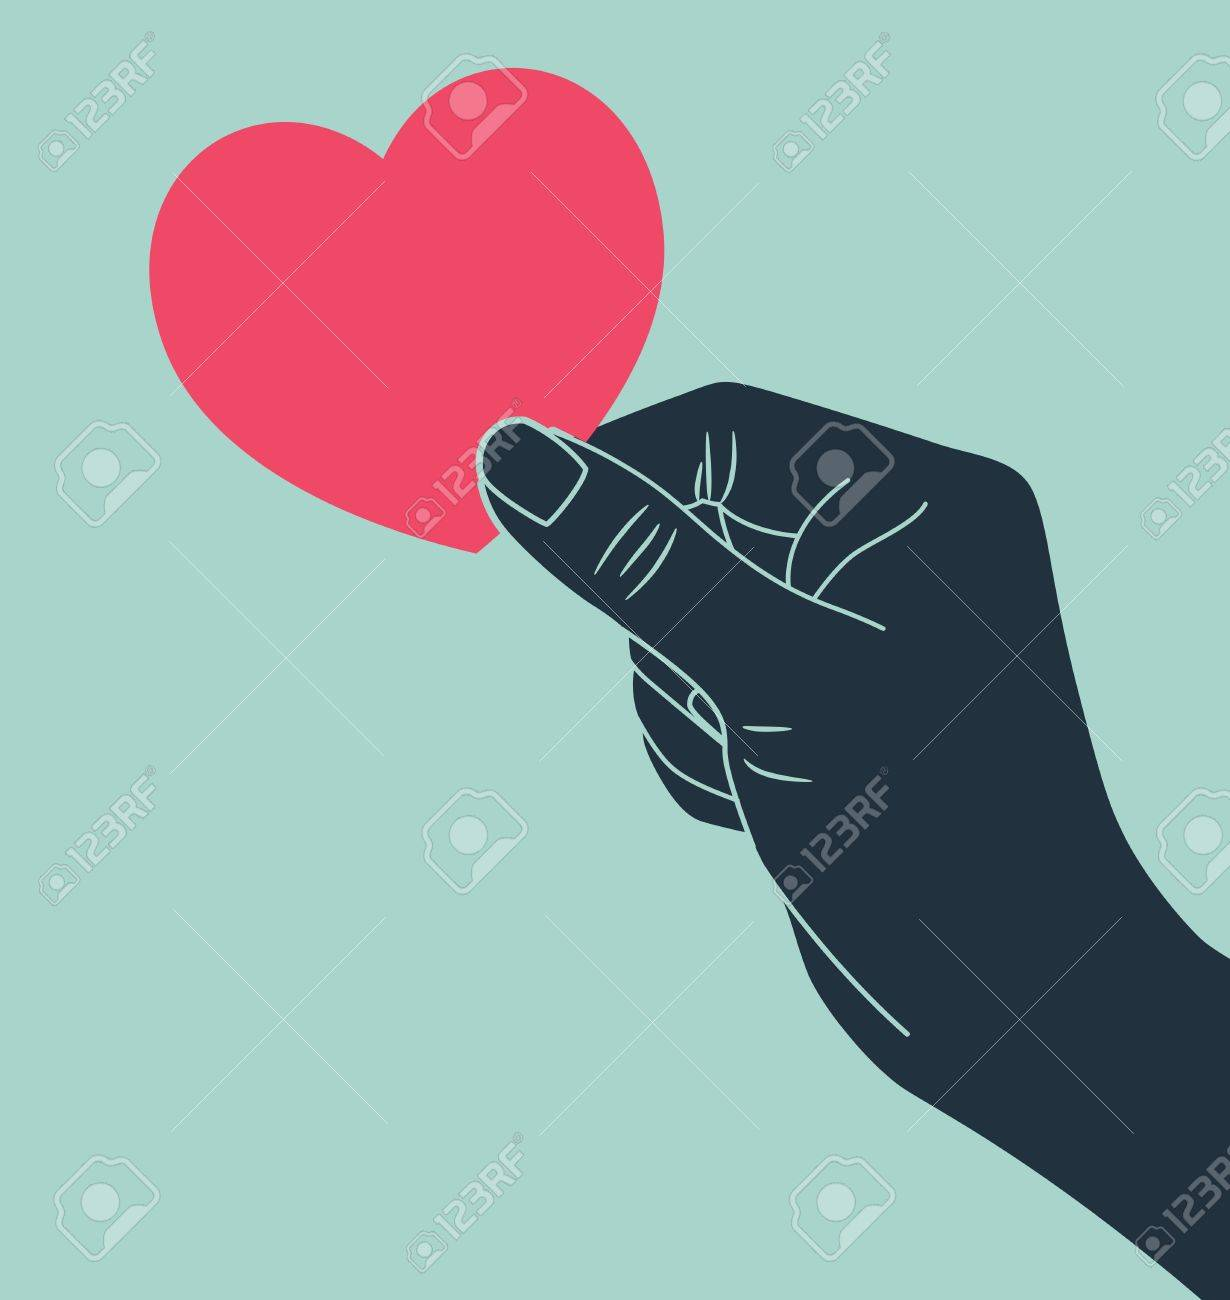 hand giving love symbol Stock Vector - 15393441